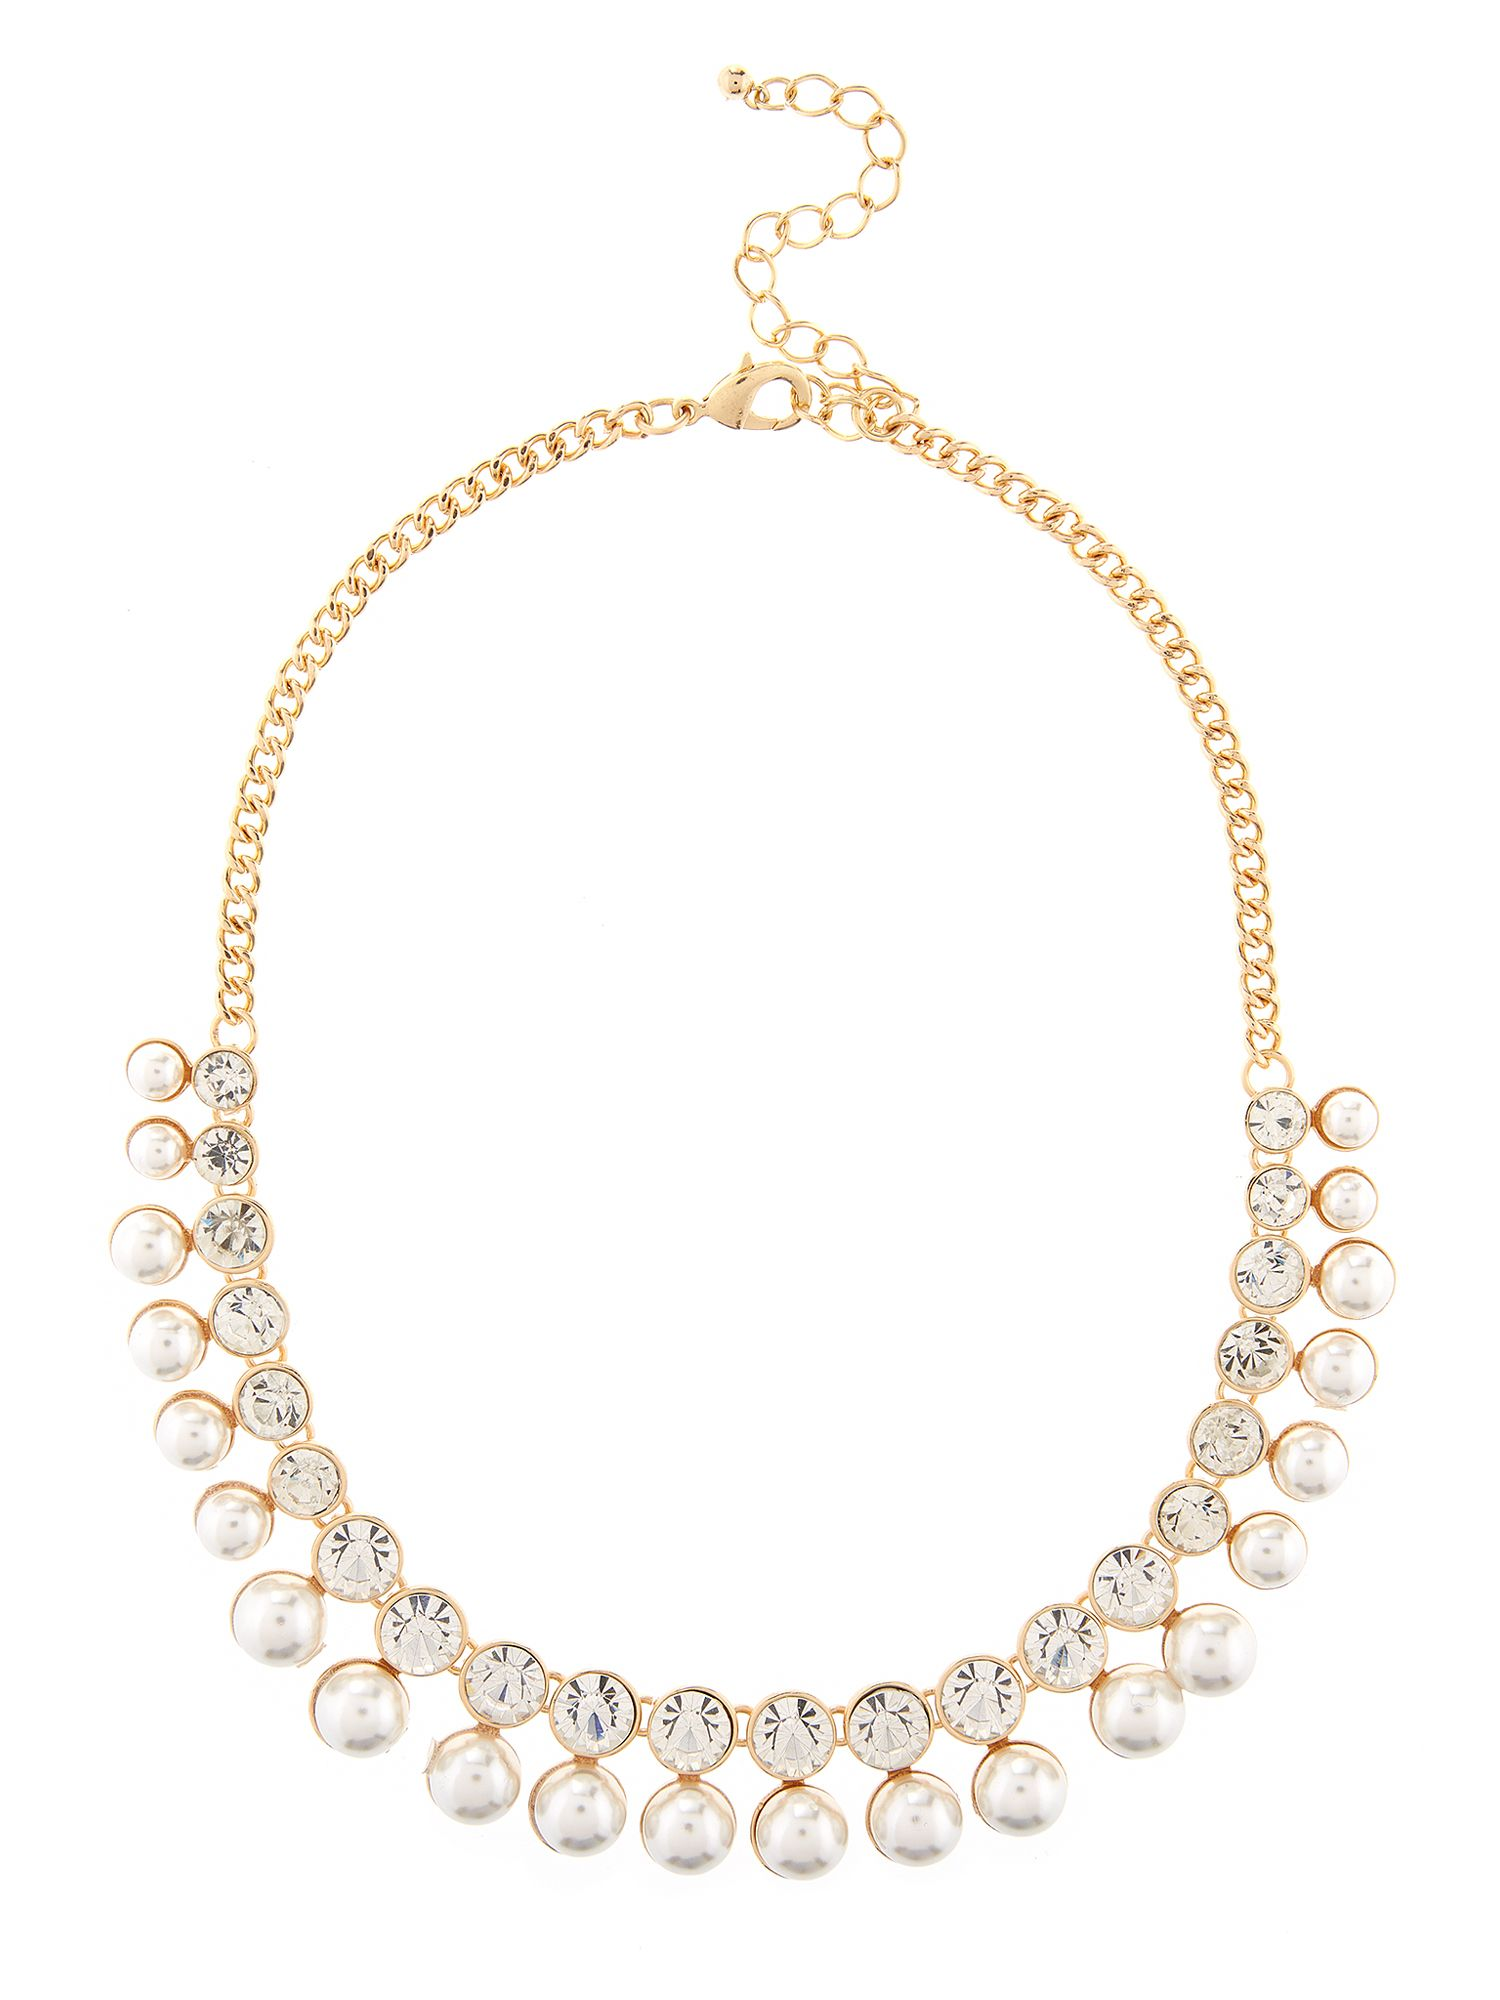 Pearl and glass bead necklace